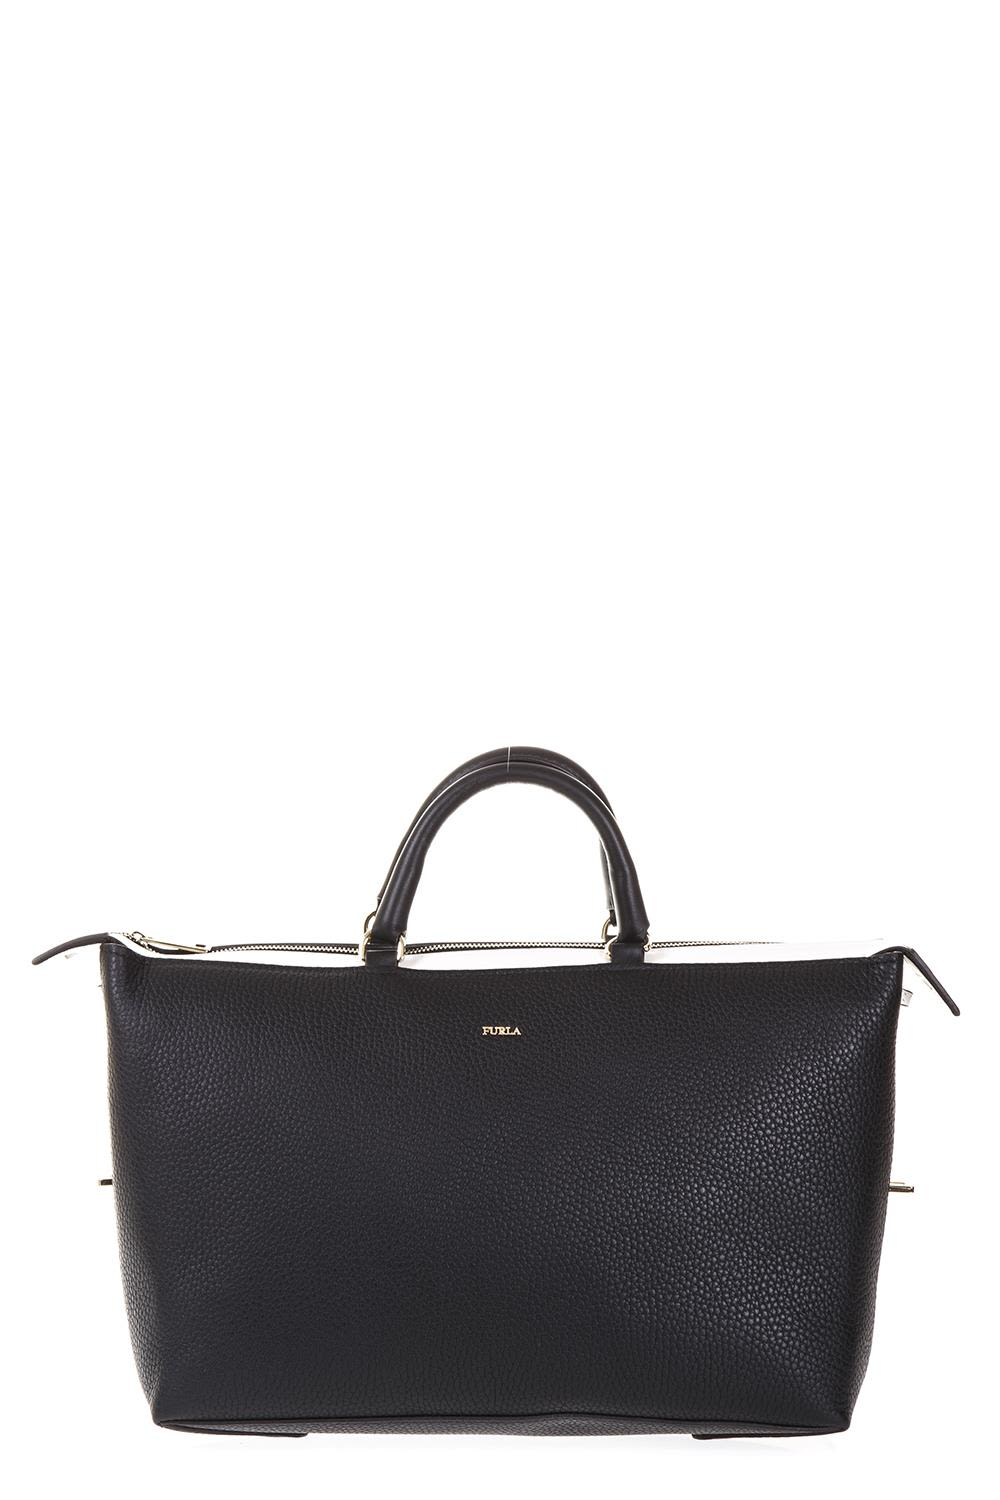 Furla Black Satchel Blogger